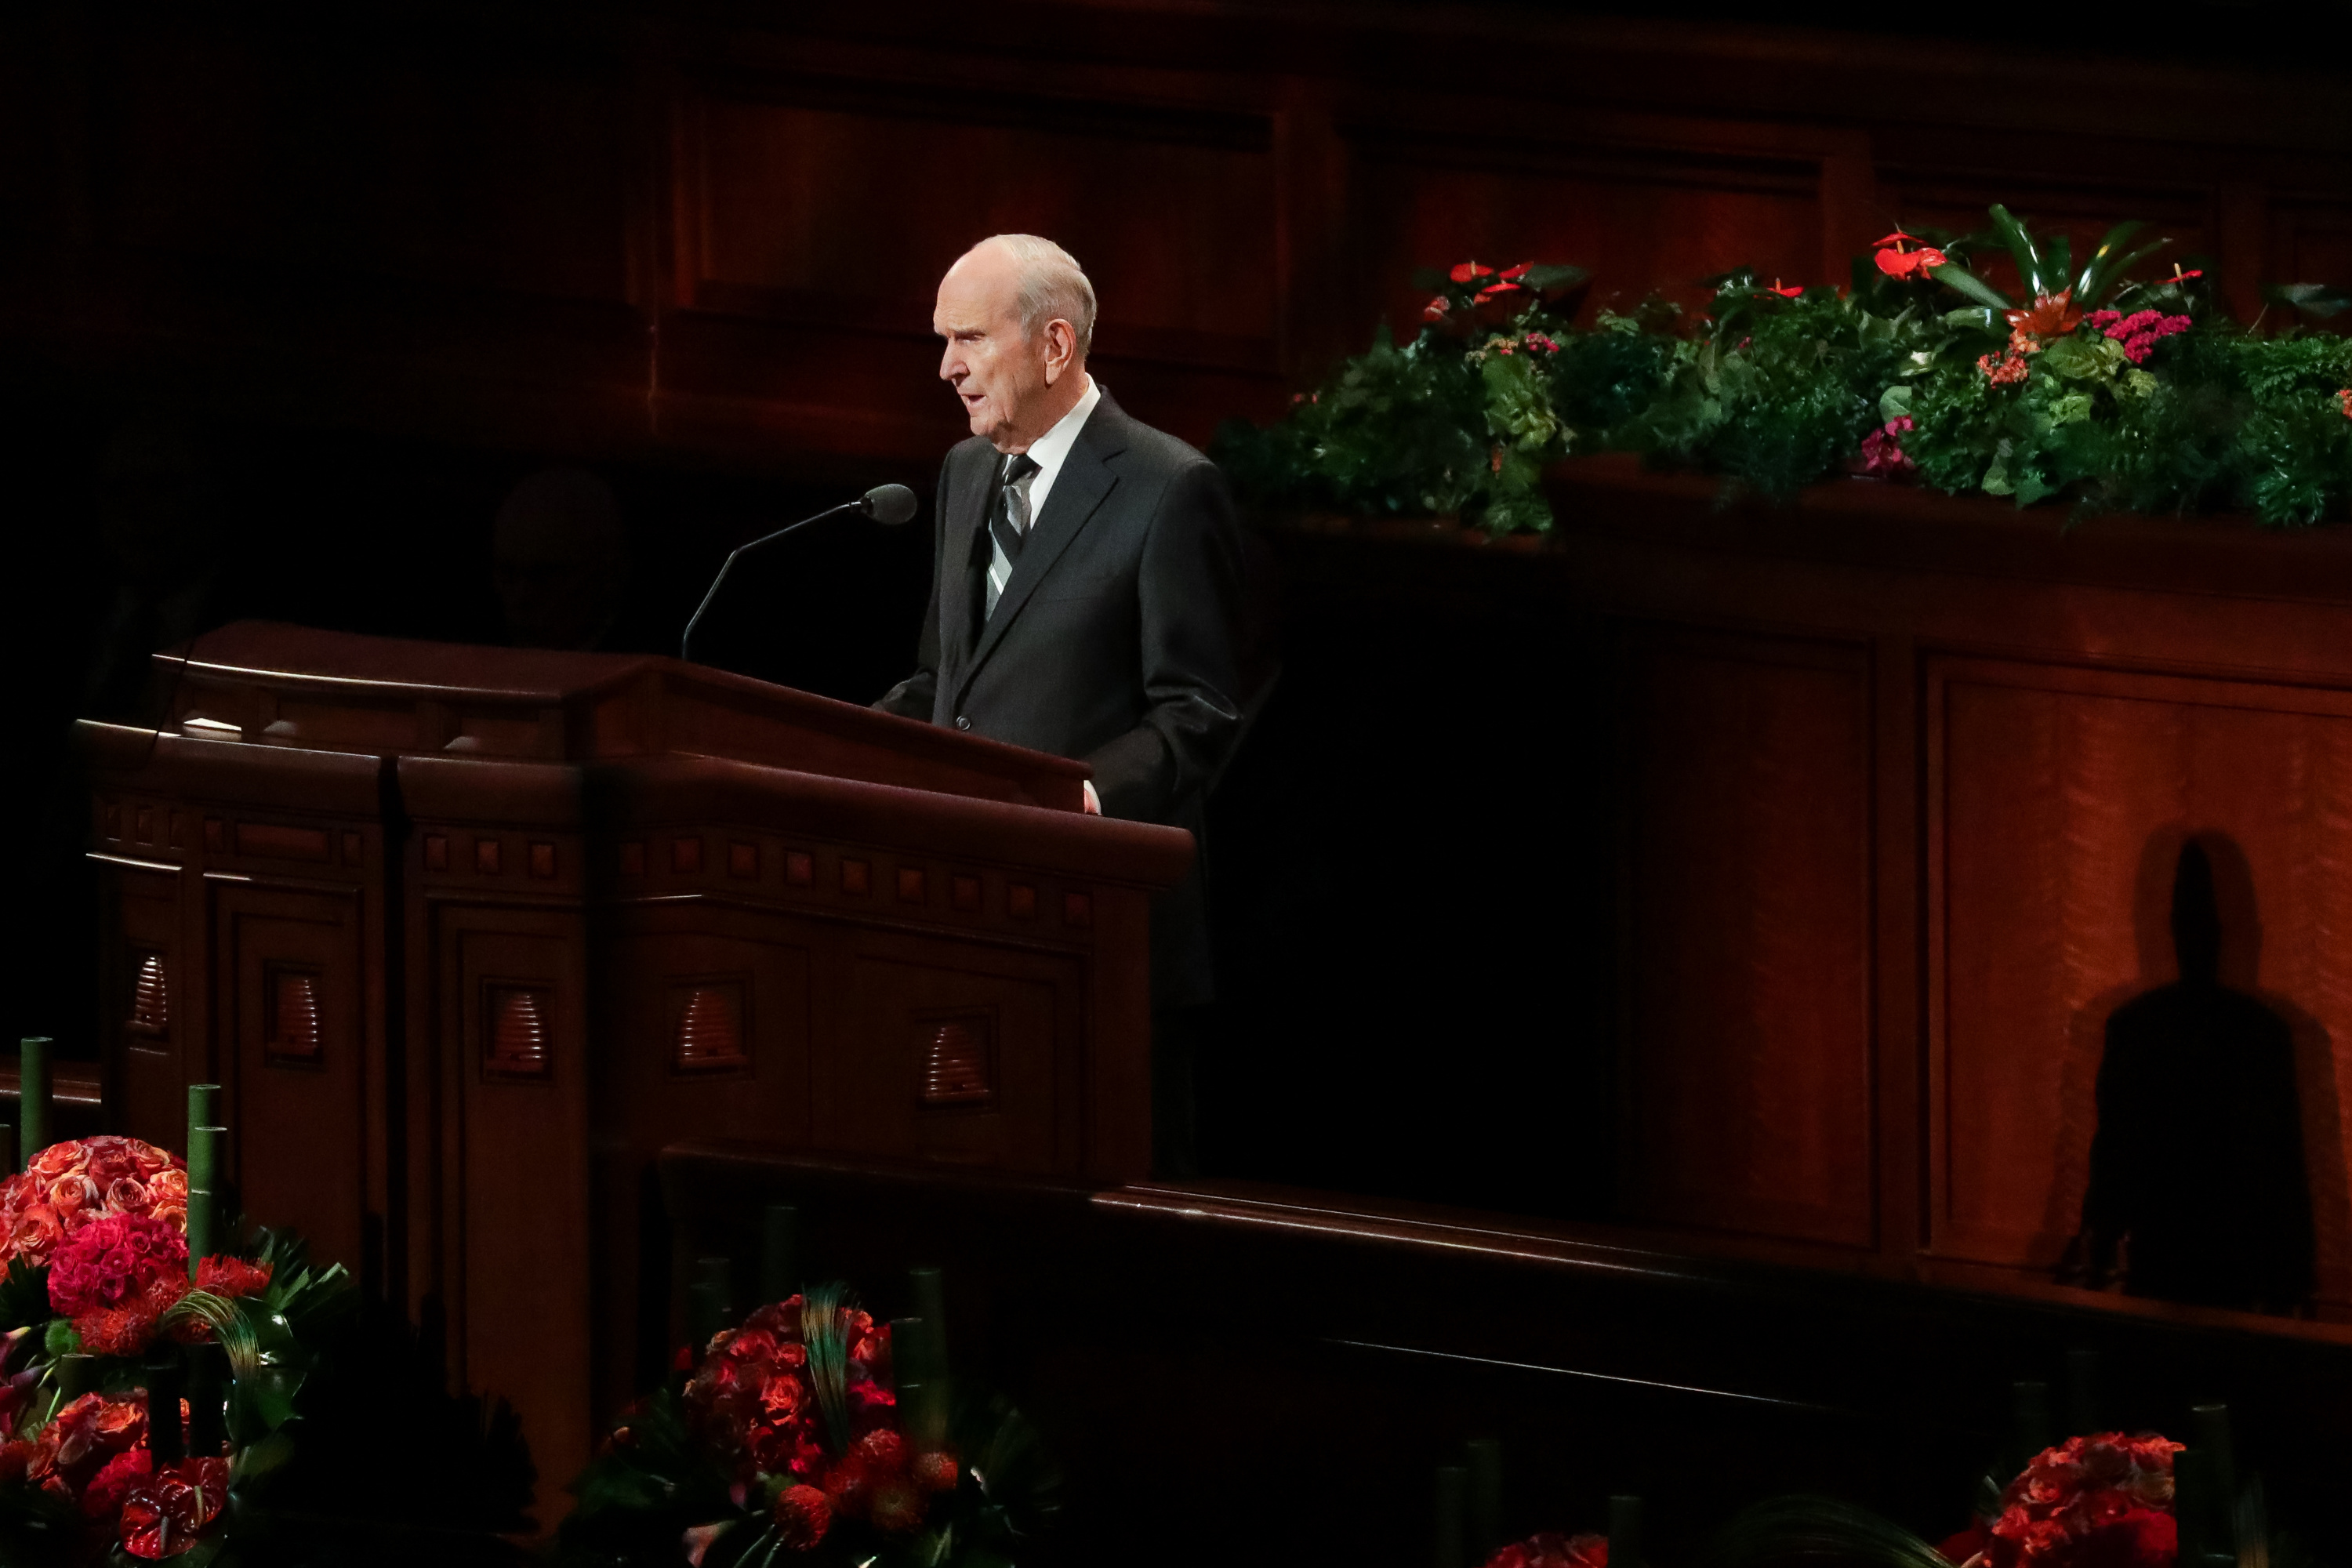 President Russell M. Nelson speaks during the Saturday morning session of the 188th Semiannual General Conference of The Church of Jesus Christ of Latter-day Saints at the Conference Center in Salt Lake City on Saturday, Oct. 6, 2018.